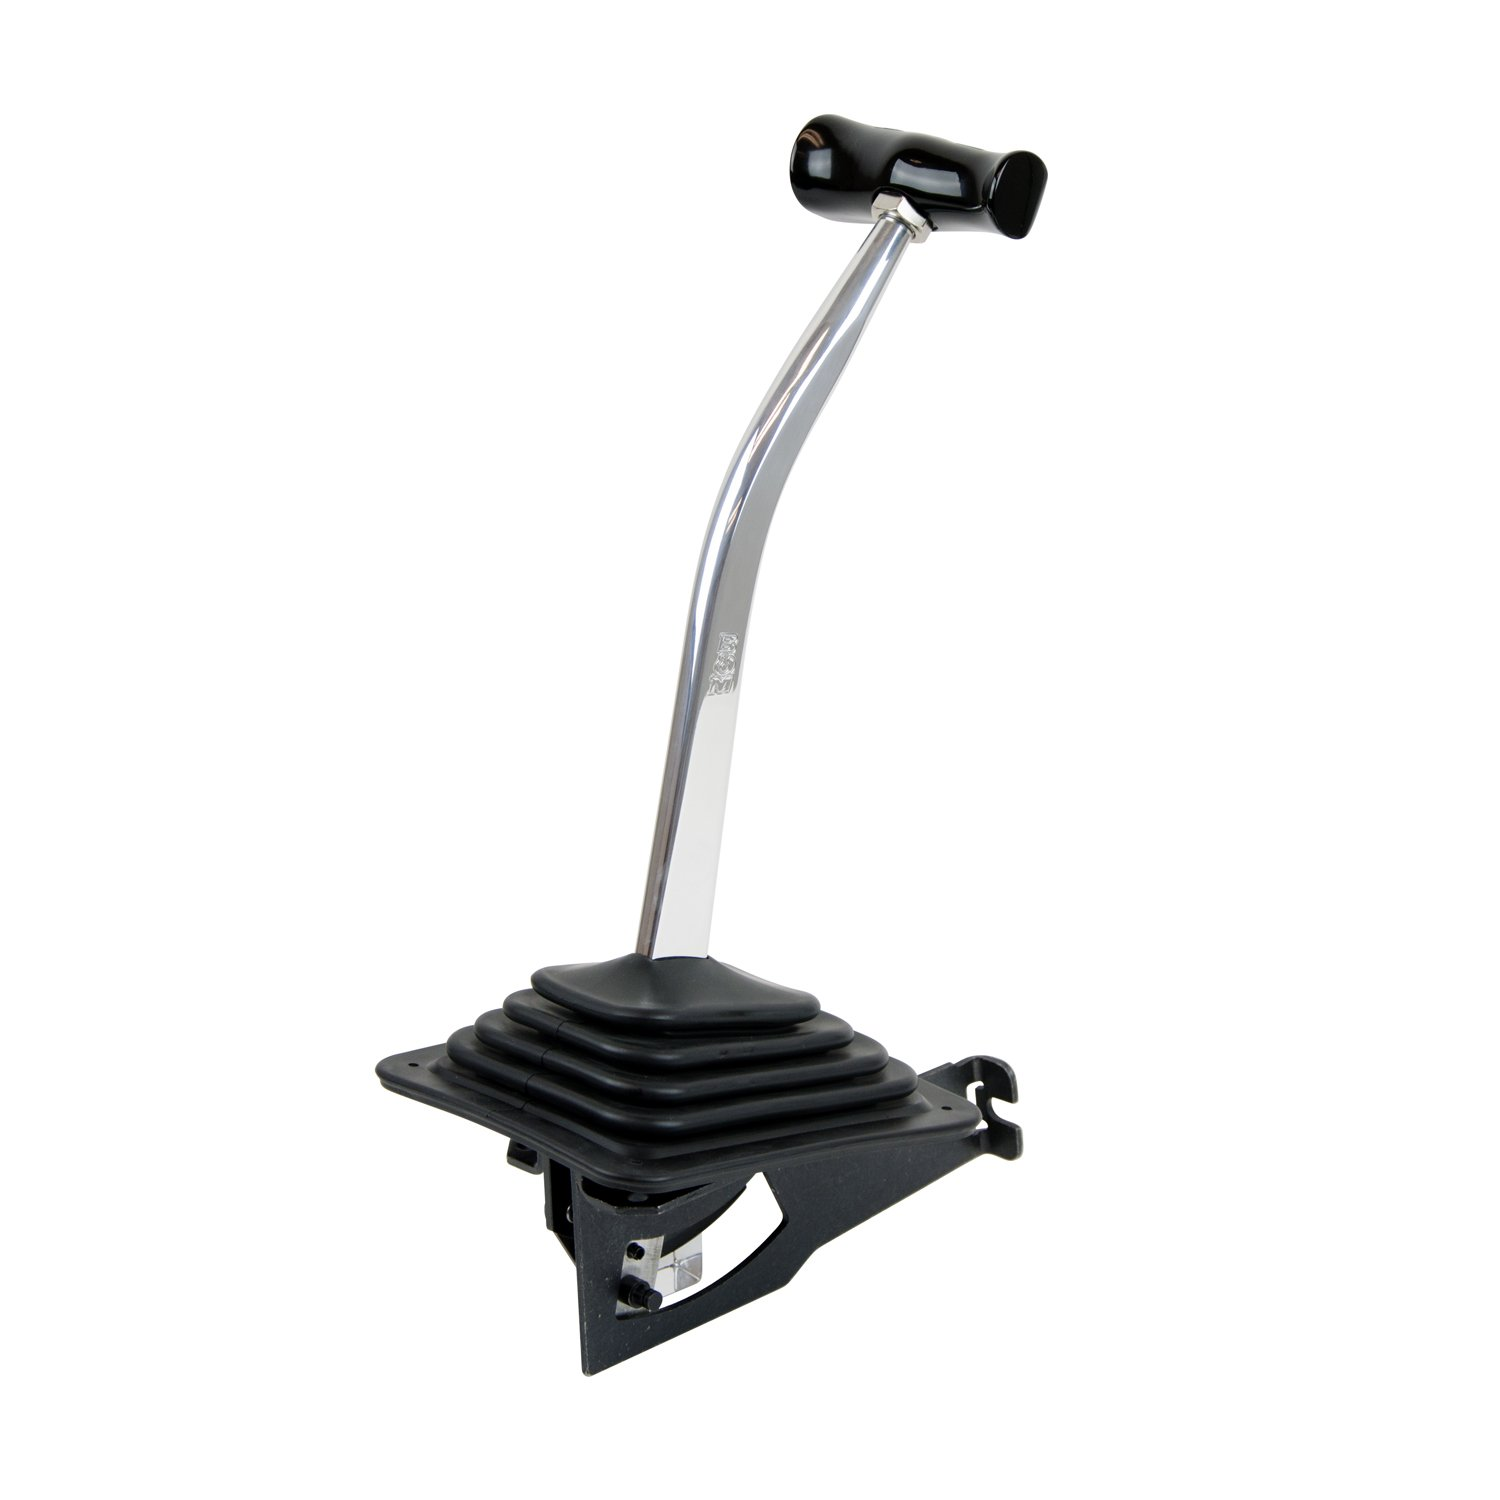 BRAND NEW B/&M AUTOMATIC DETENT SHIFTER,UNIVERSAL 3 /& 4 SPEED,CHROME PLATED WITH BLACK T-HANDLE,COMPATIBLE WITH GM TH400,350,250,200,700R4,4L60,4L60E,4L65E,4L80E AUTO TRANSMISSIONS